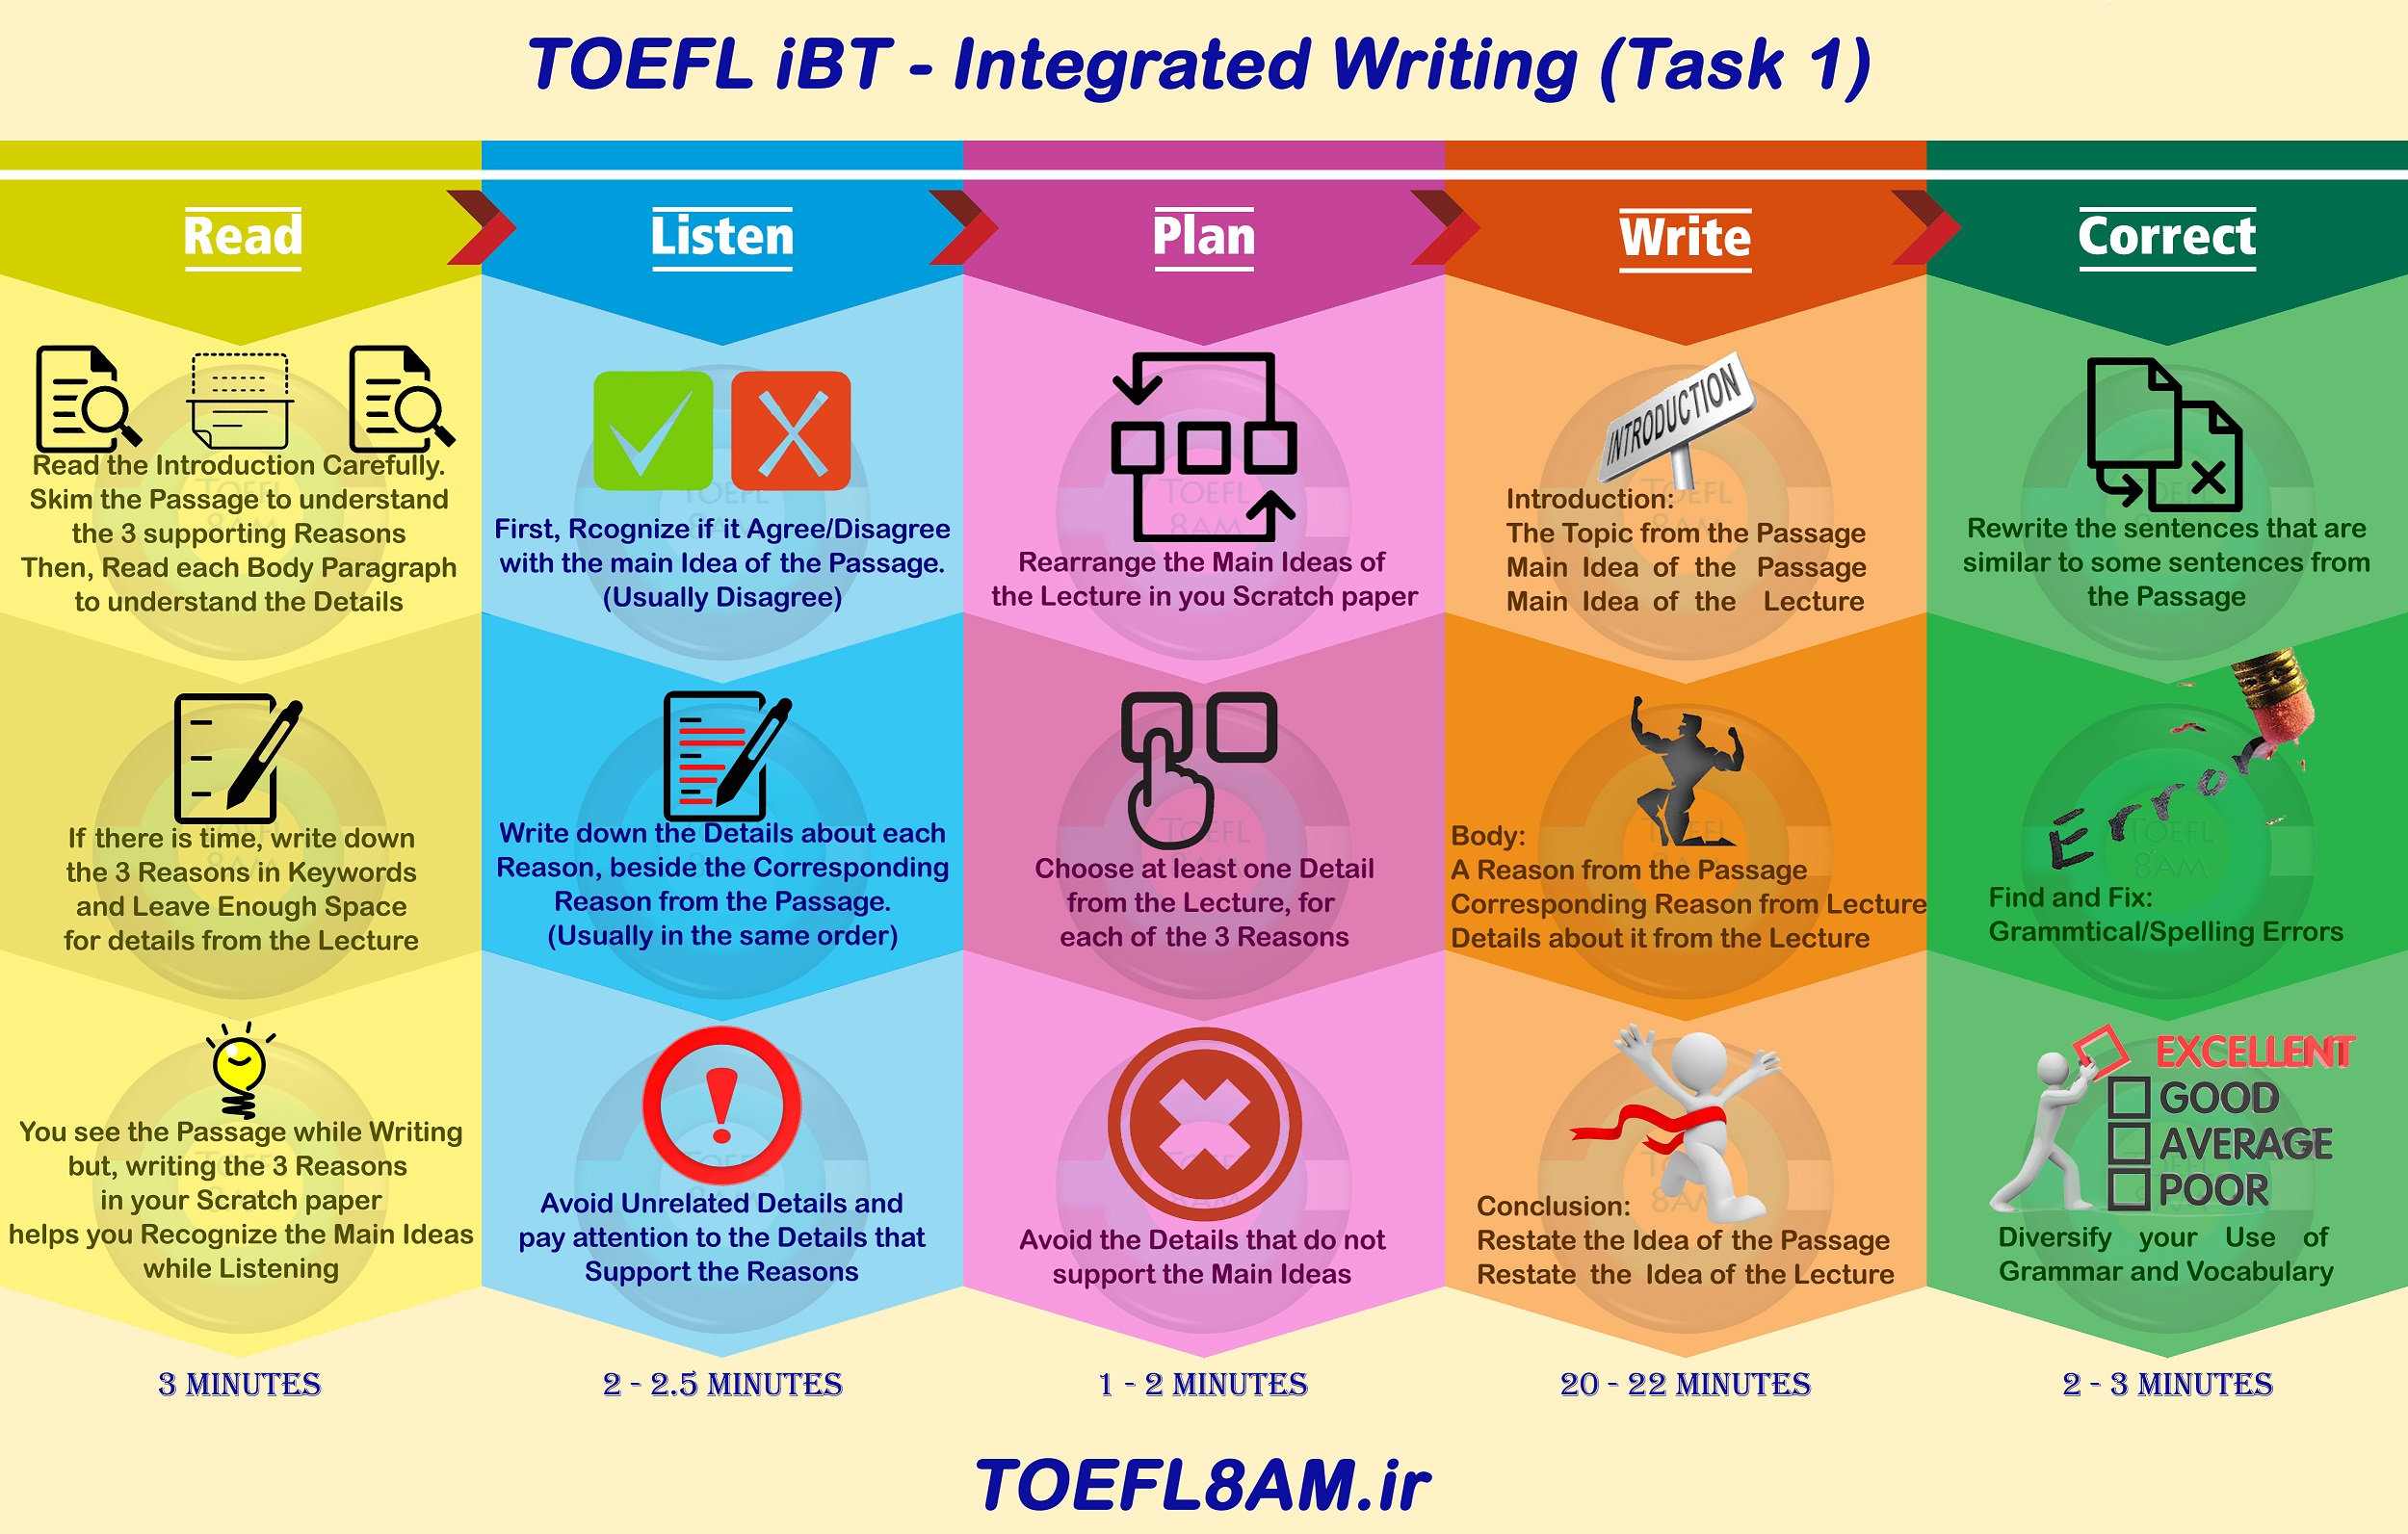 write an Integrated Writing in TOEFL iBT infographic